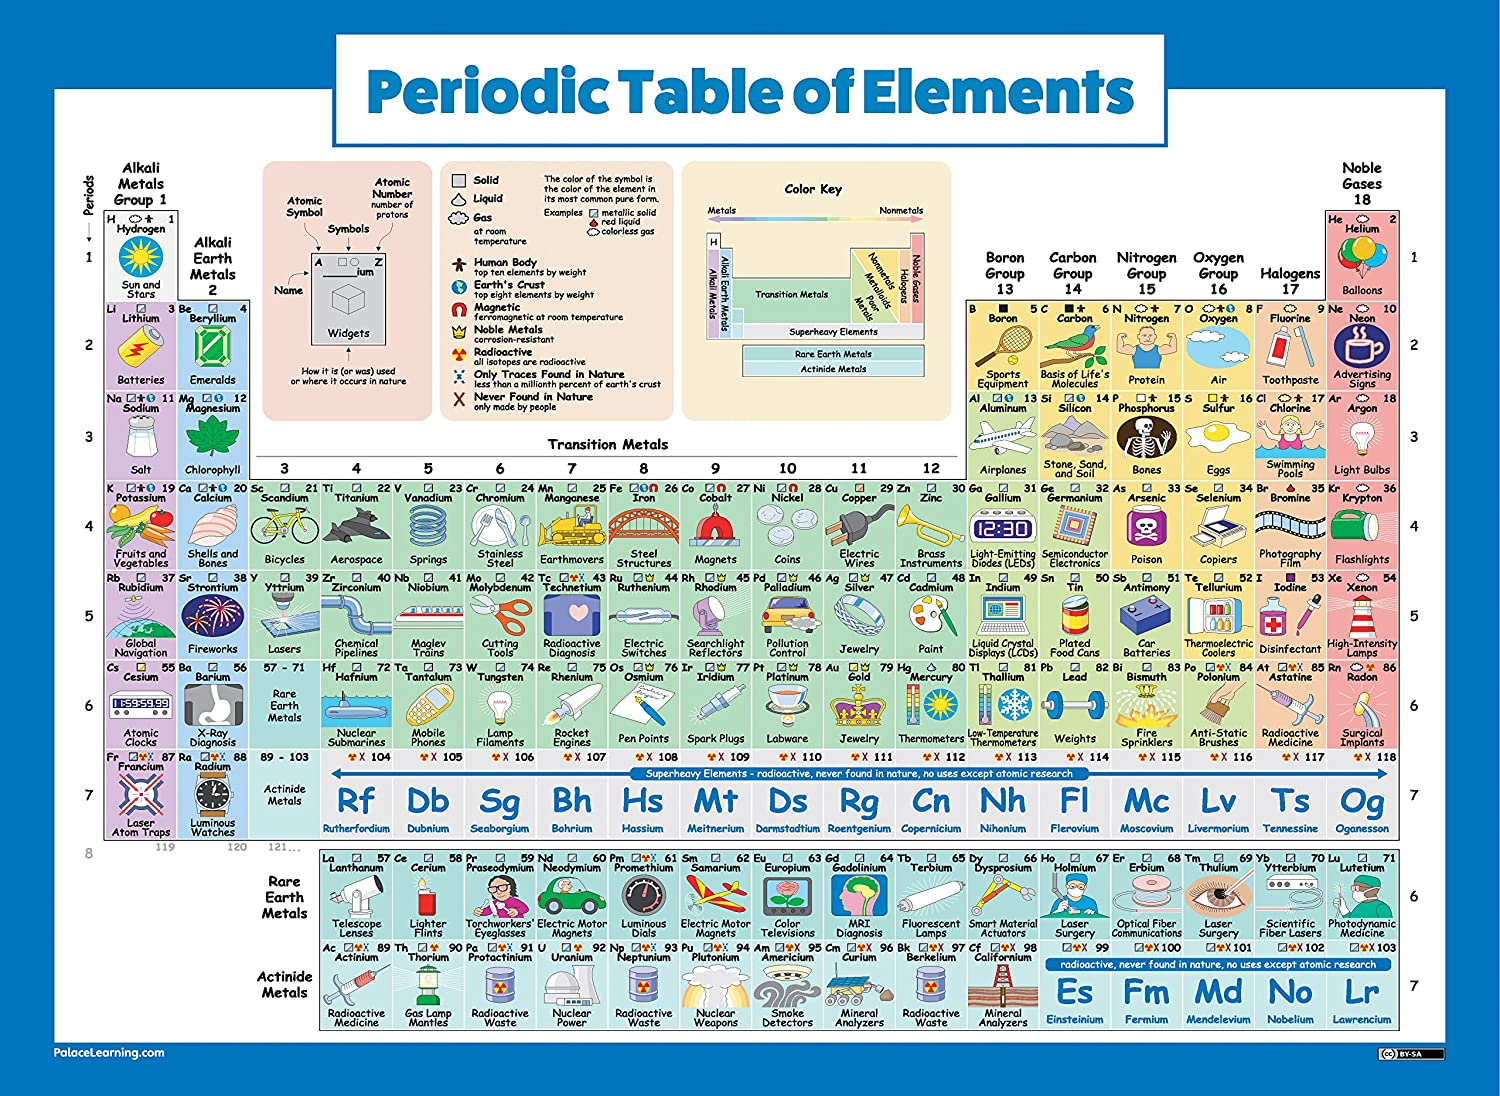 Amazon.com: Periodic Table of Elements Poster For Kids - LAMINATED ...